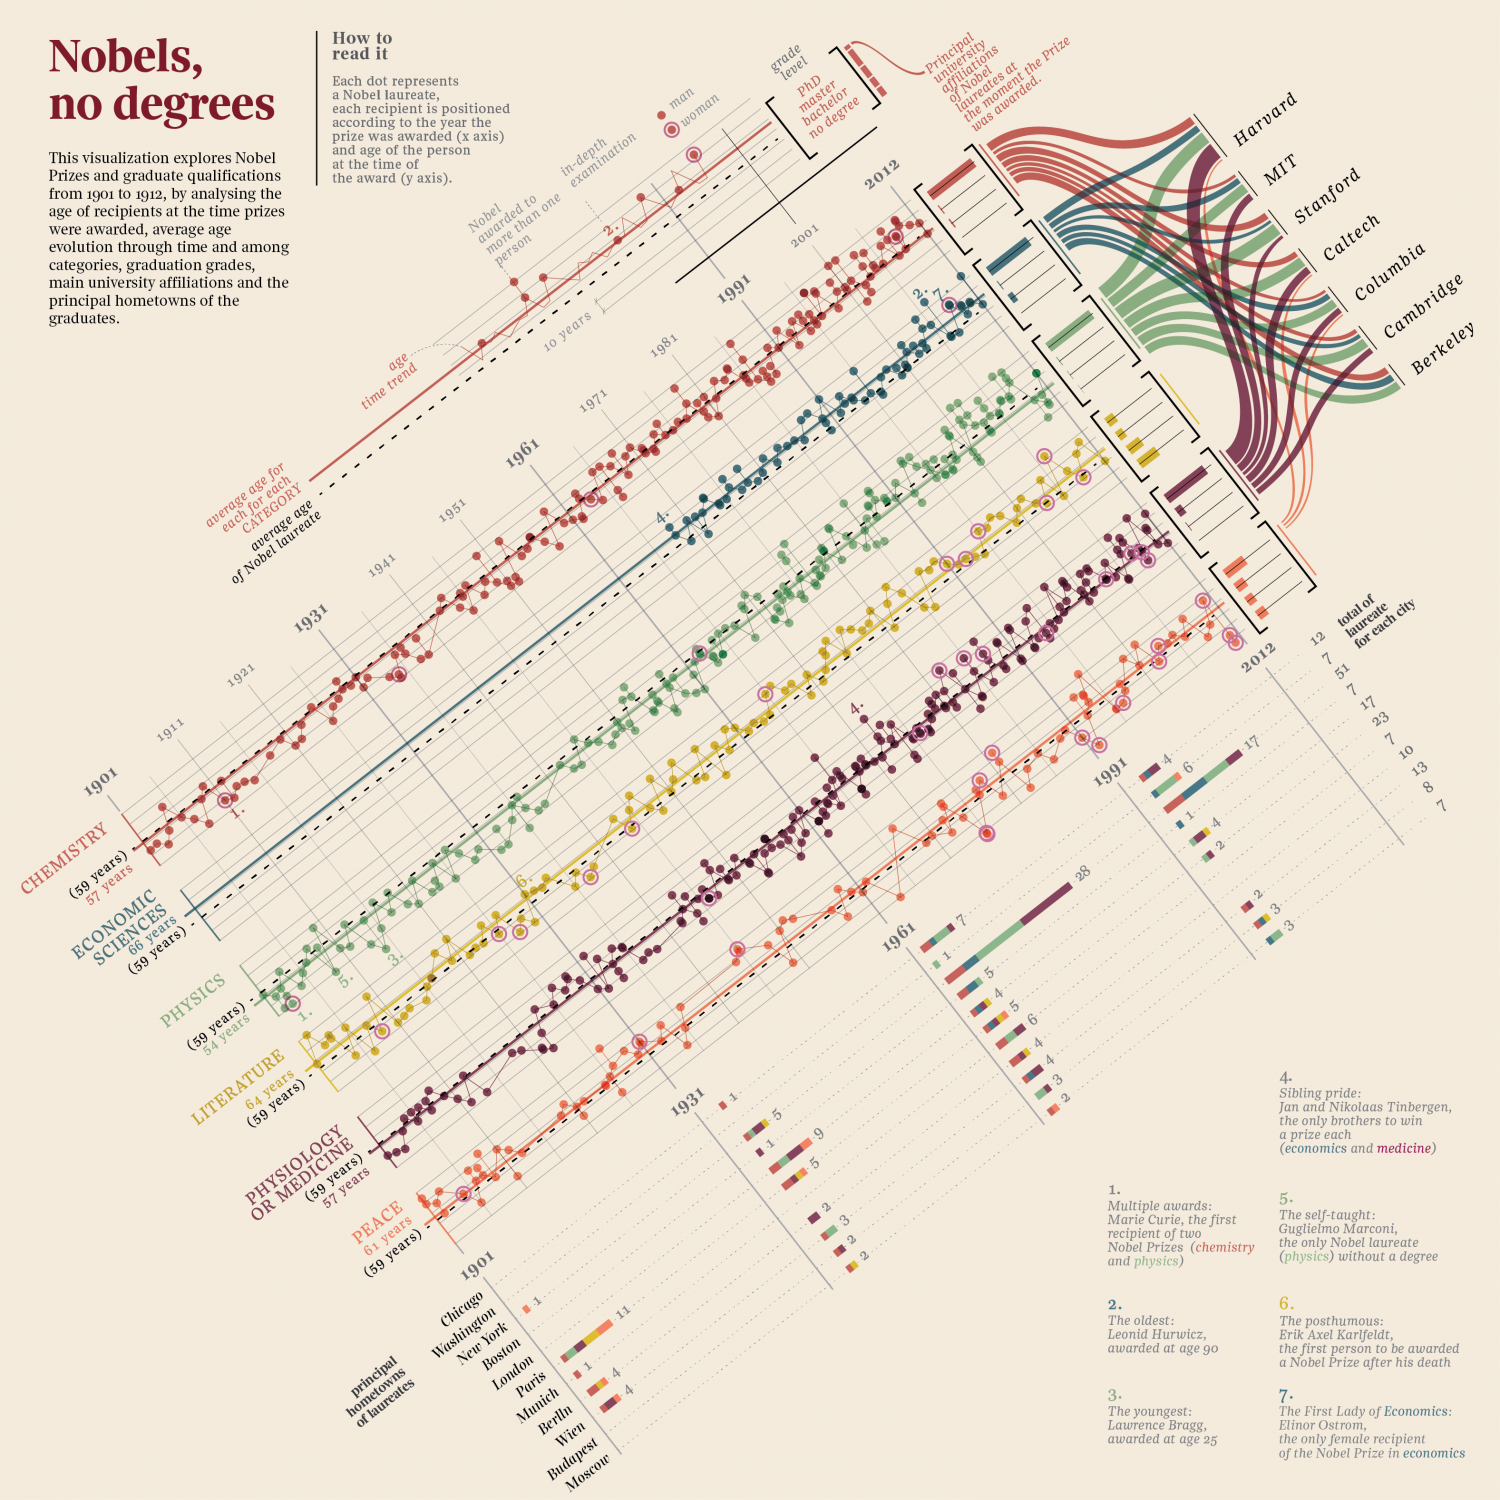 Nobels, no degrees (English) Infographic